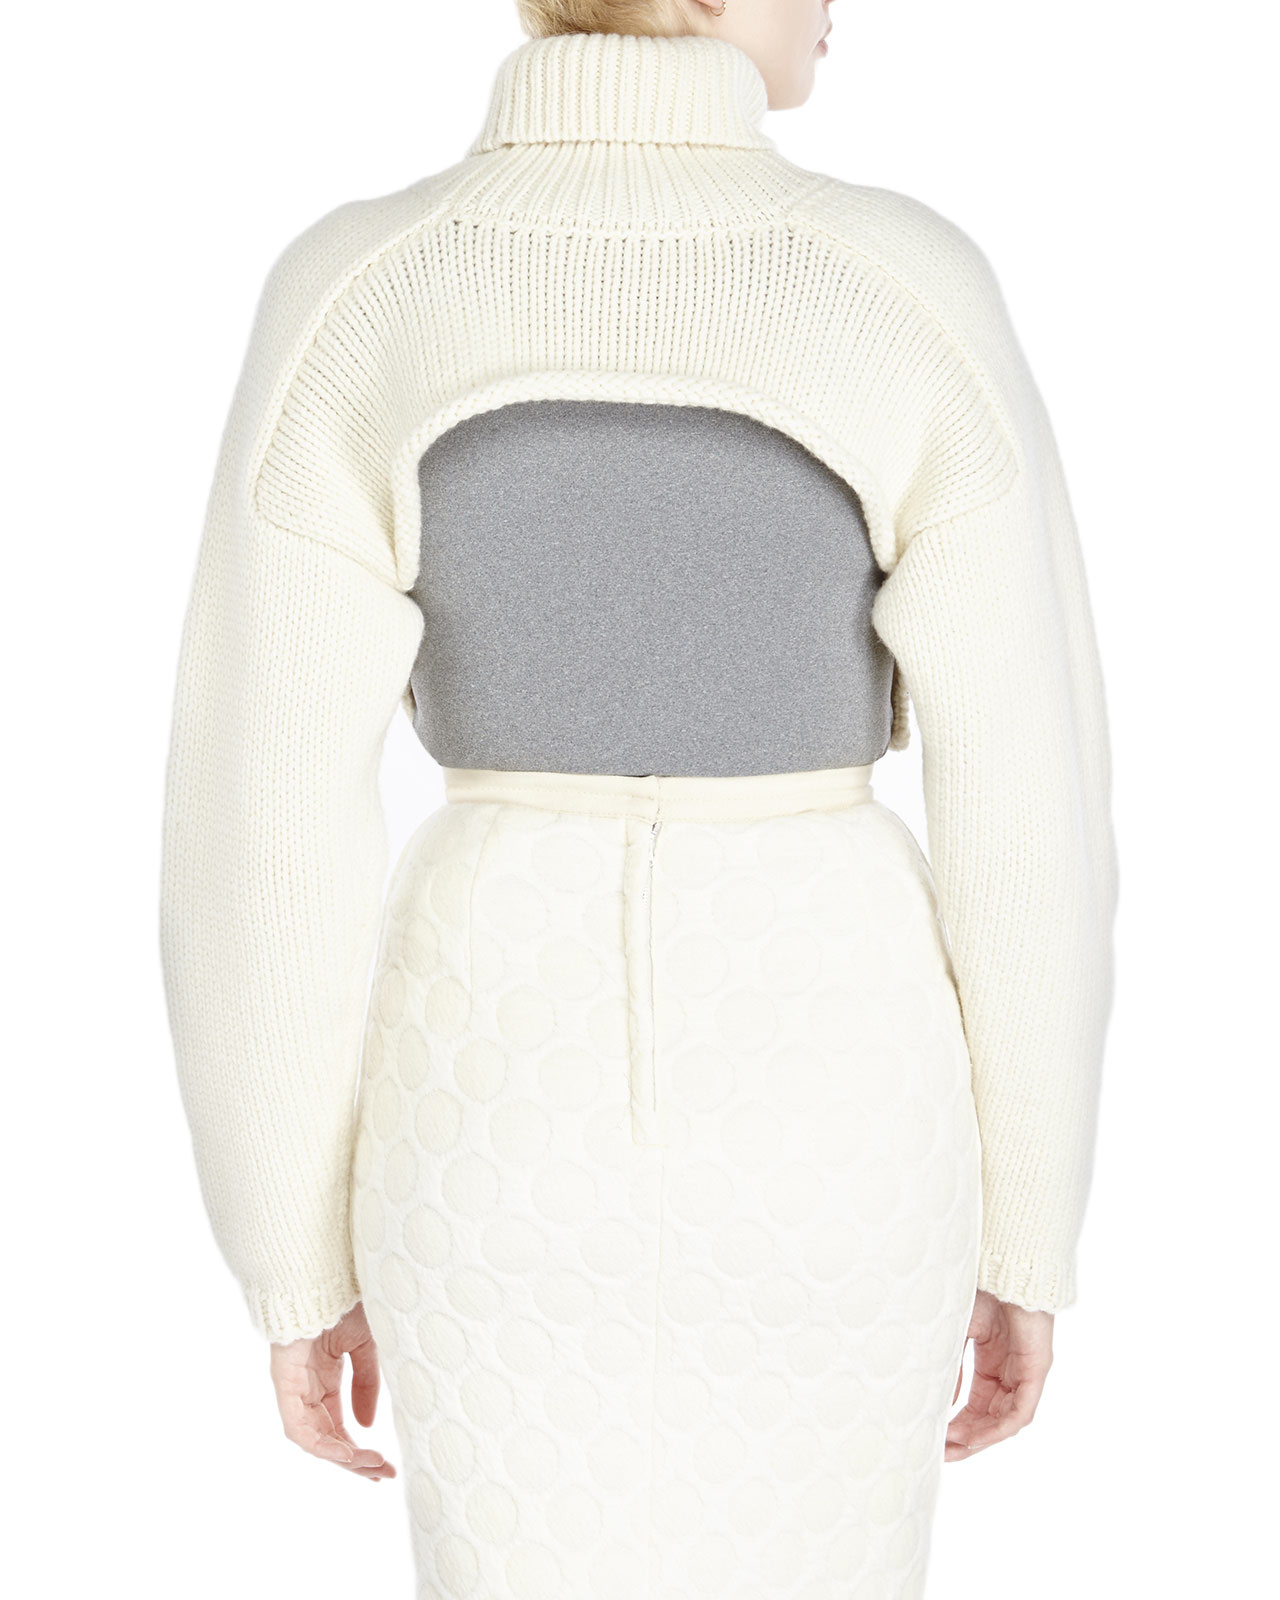 Ter et bantine Cropped Turtleneck Sweater in Natural | Lyst